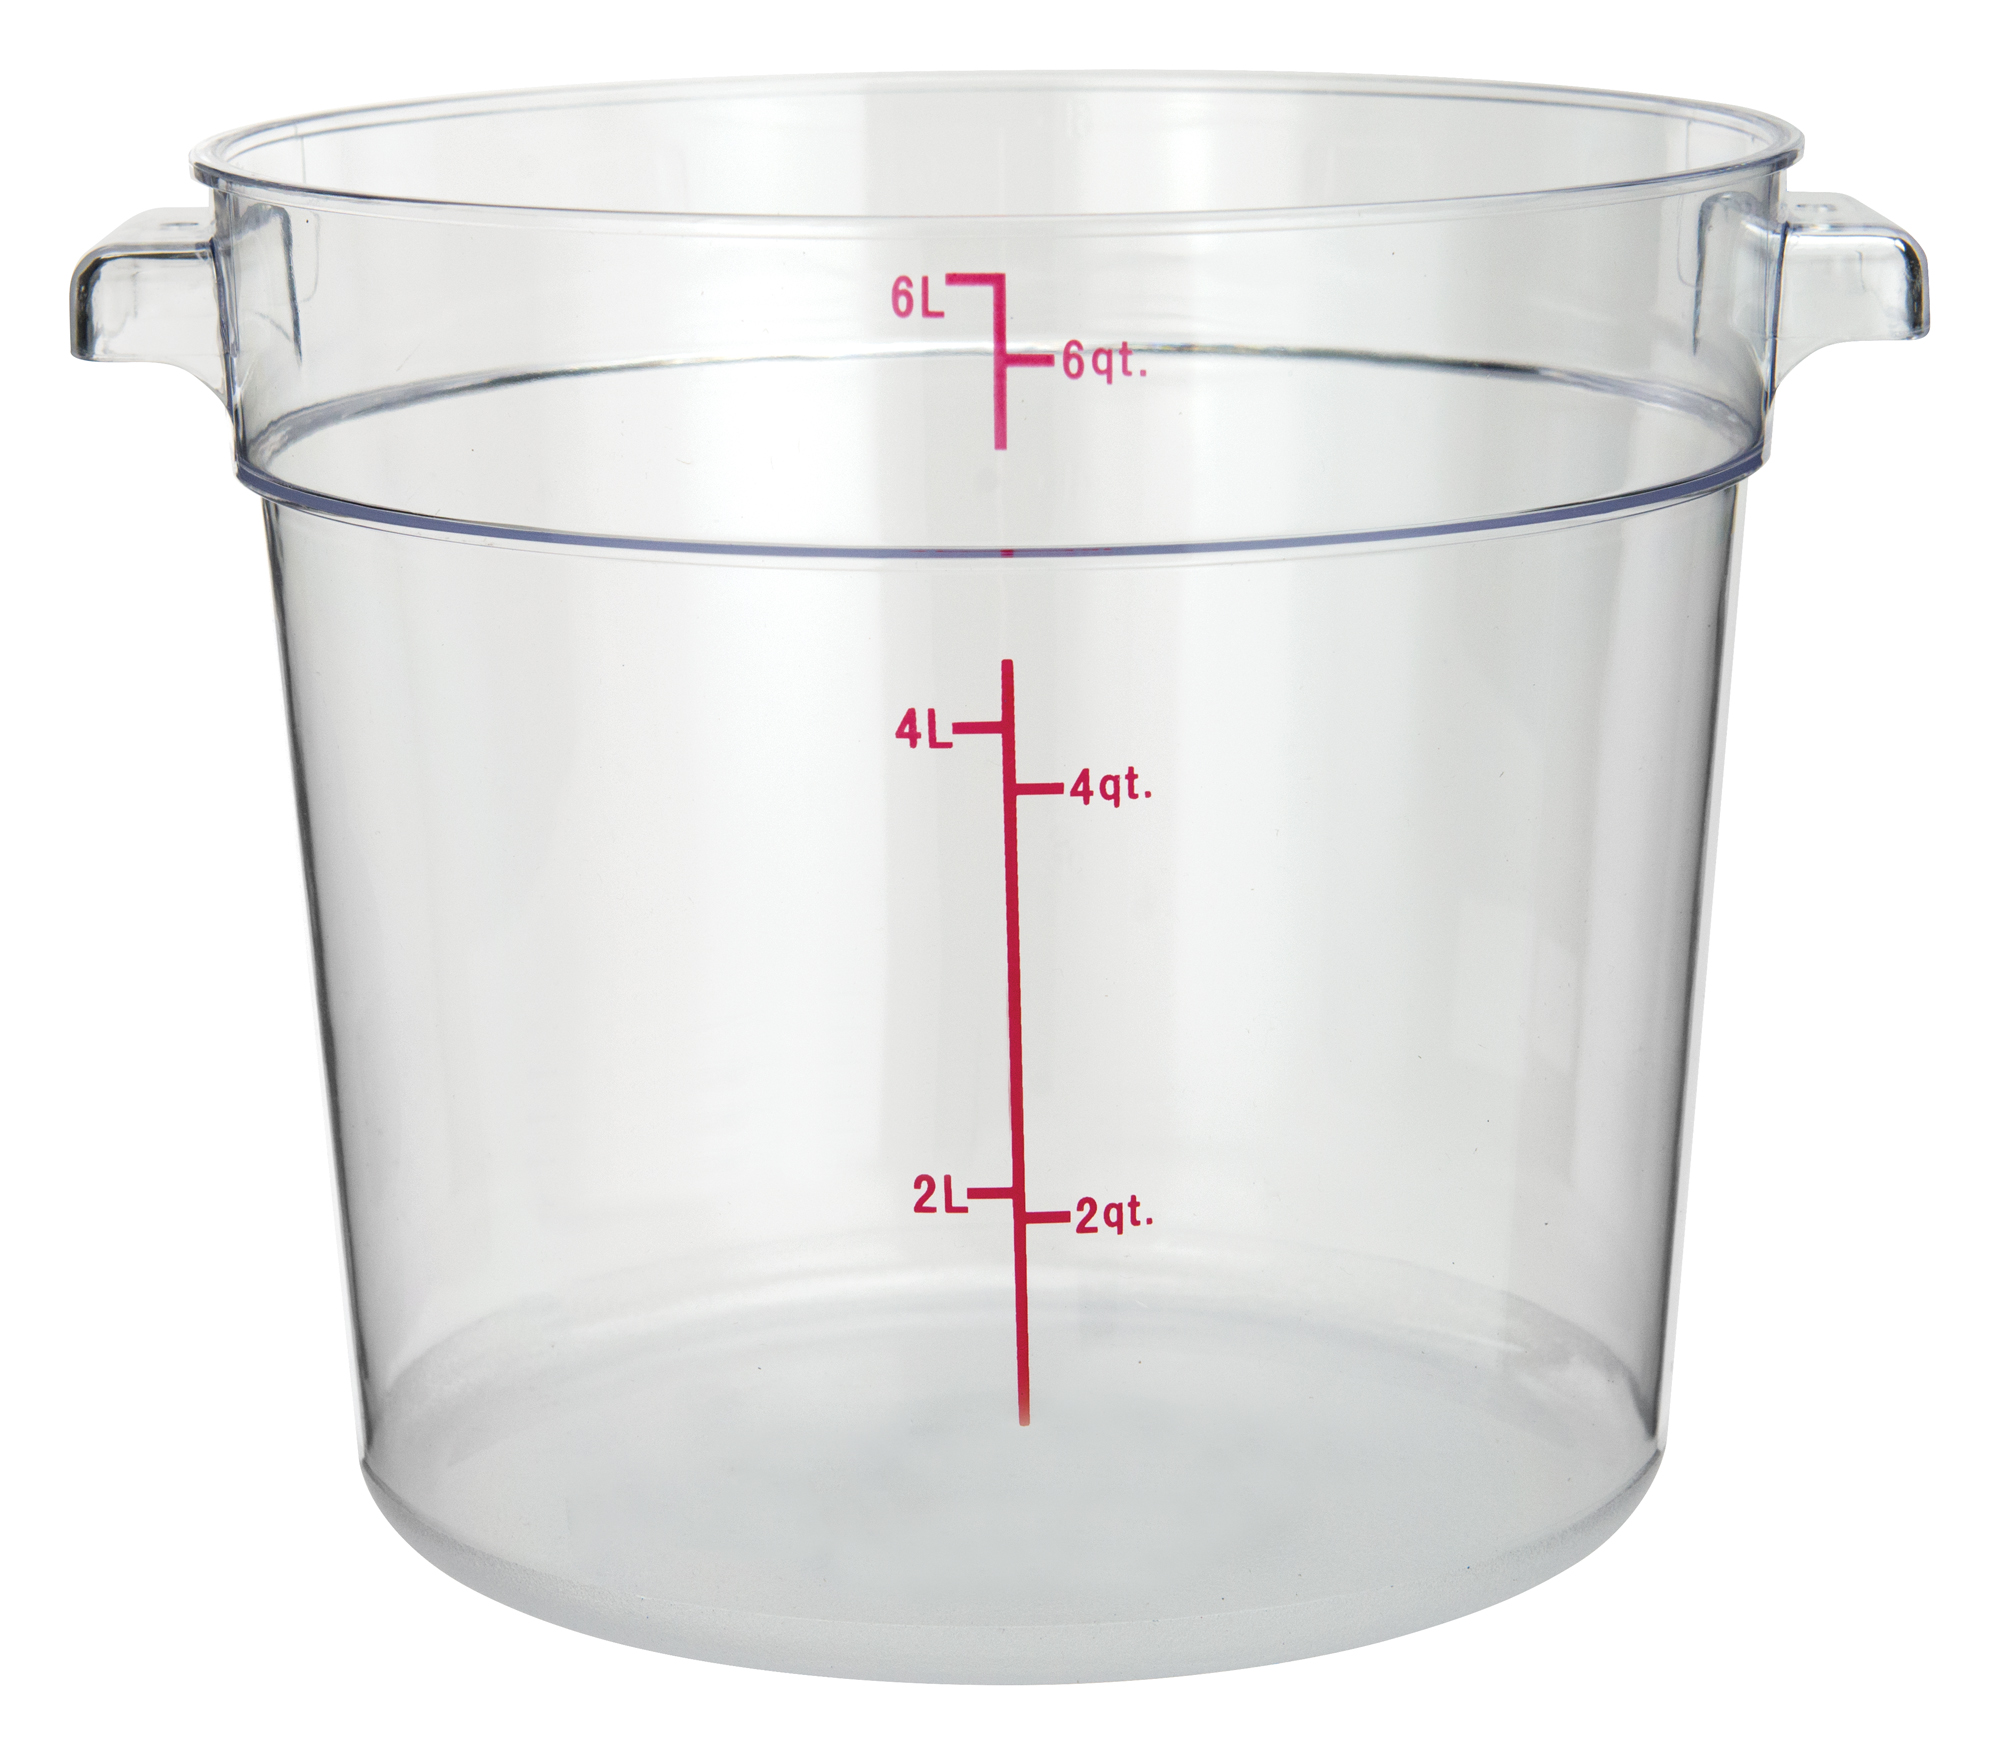 Winco PCRC-6 round food storage containers